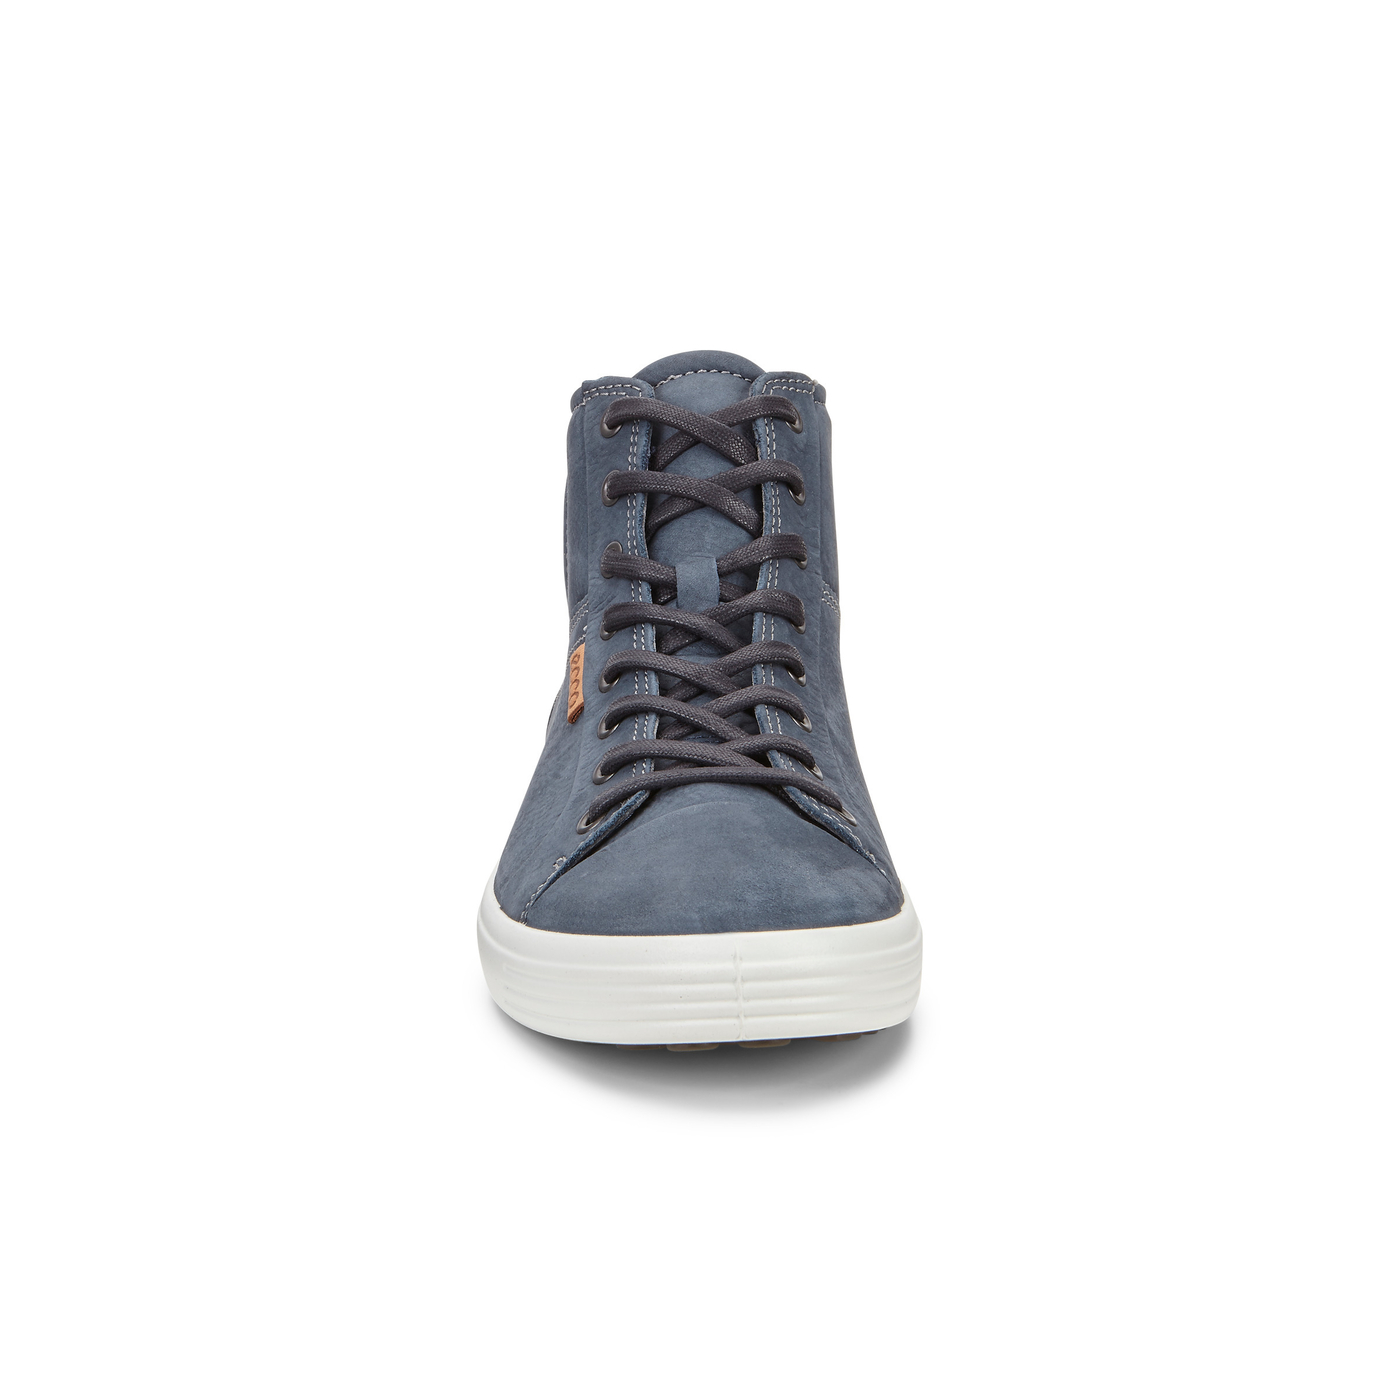 ECCO SOFT7 Mens High Top